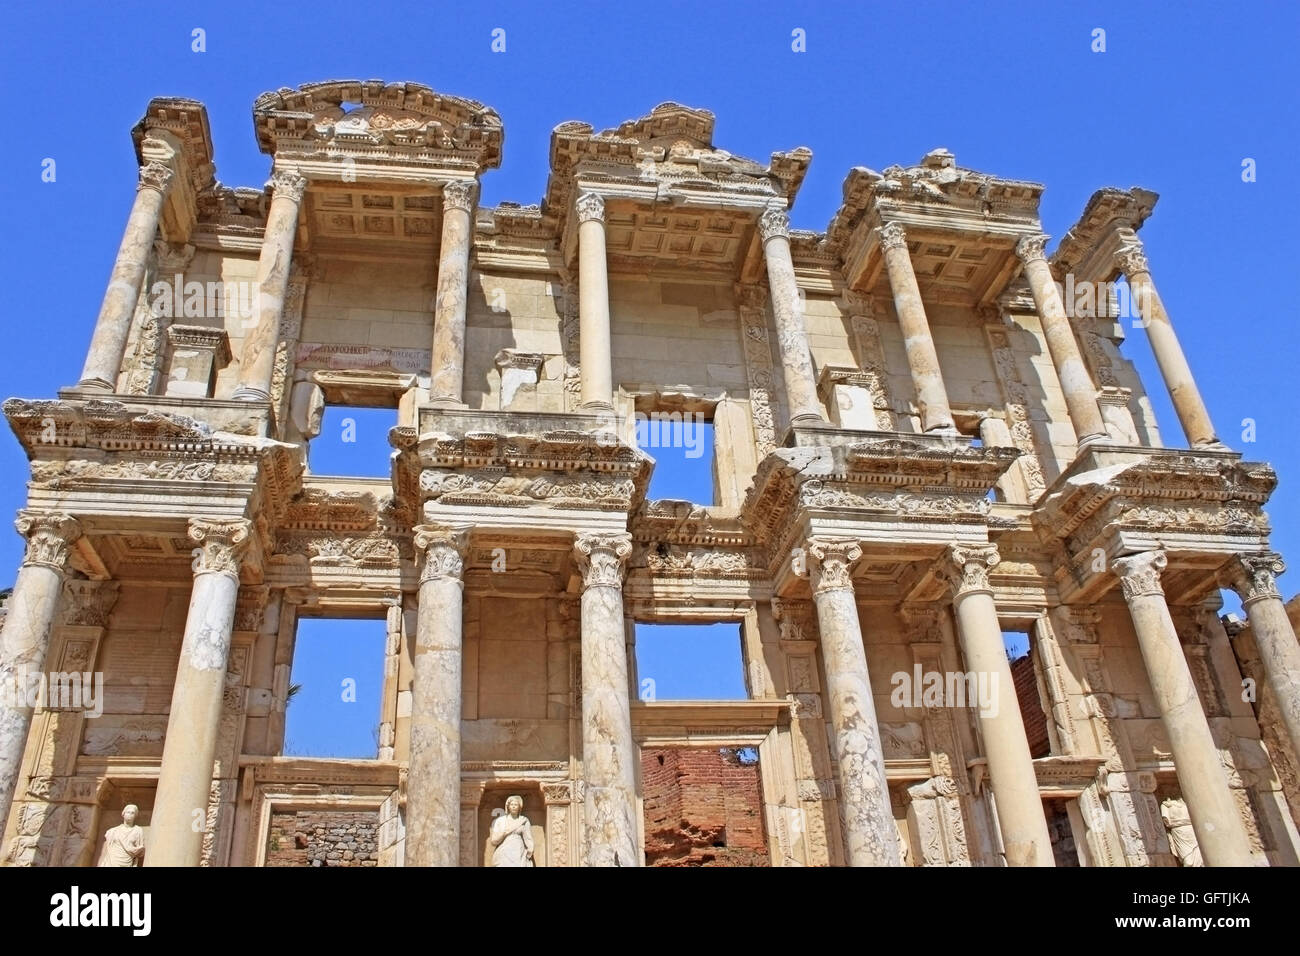 The remains of the enormous Library of Celsus in the city of Ephesus in modern day Turkey - Stock Image